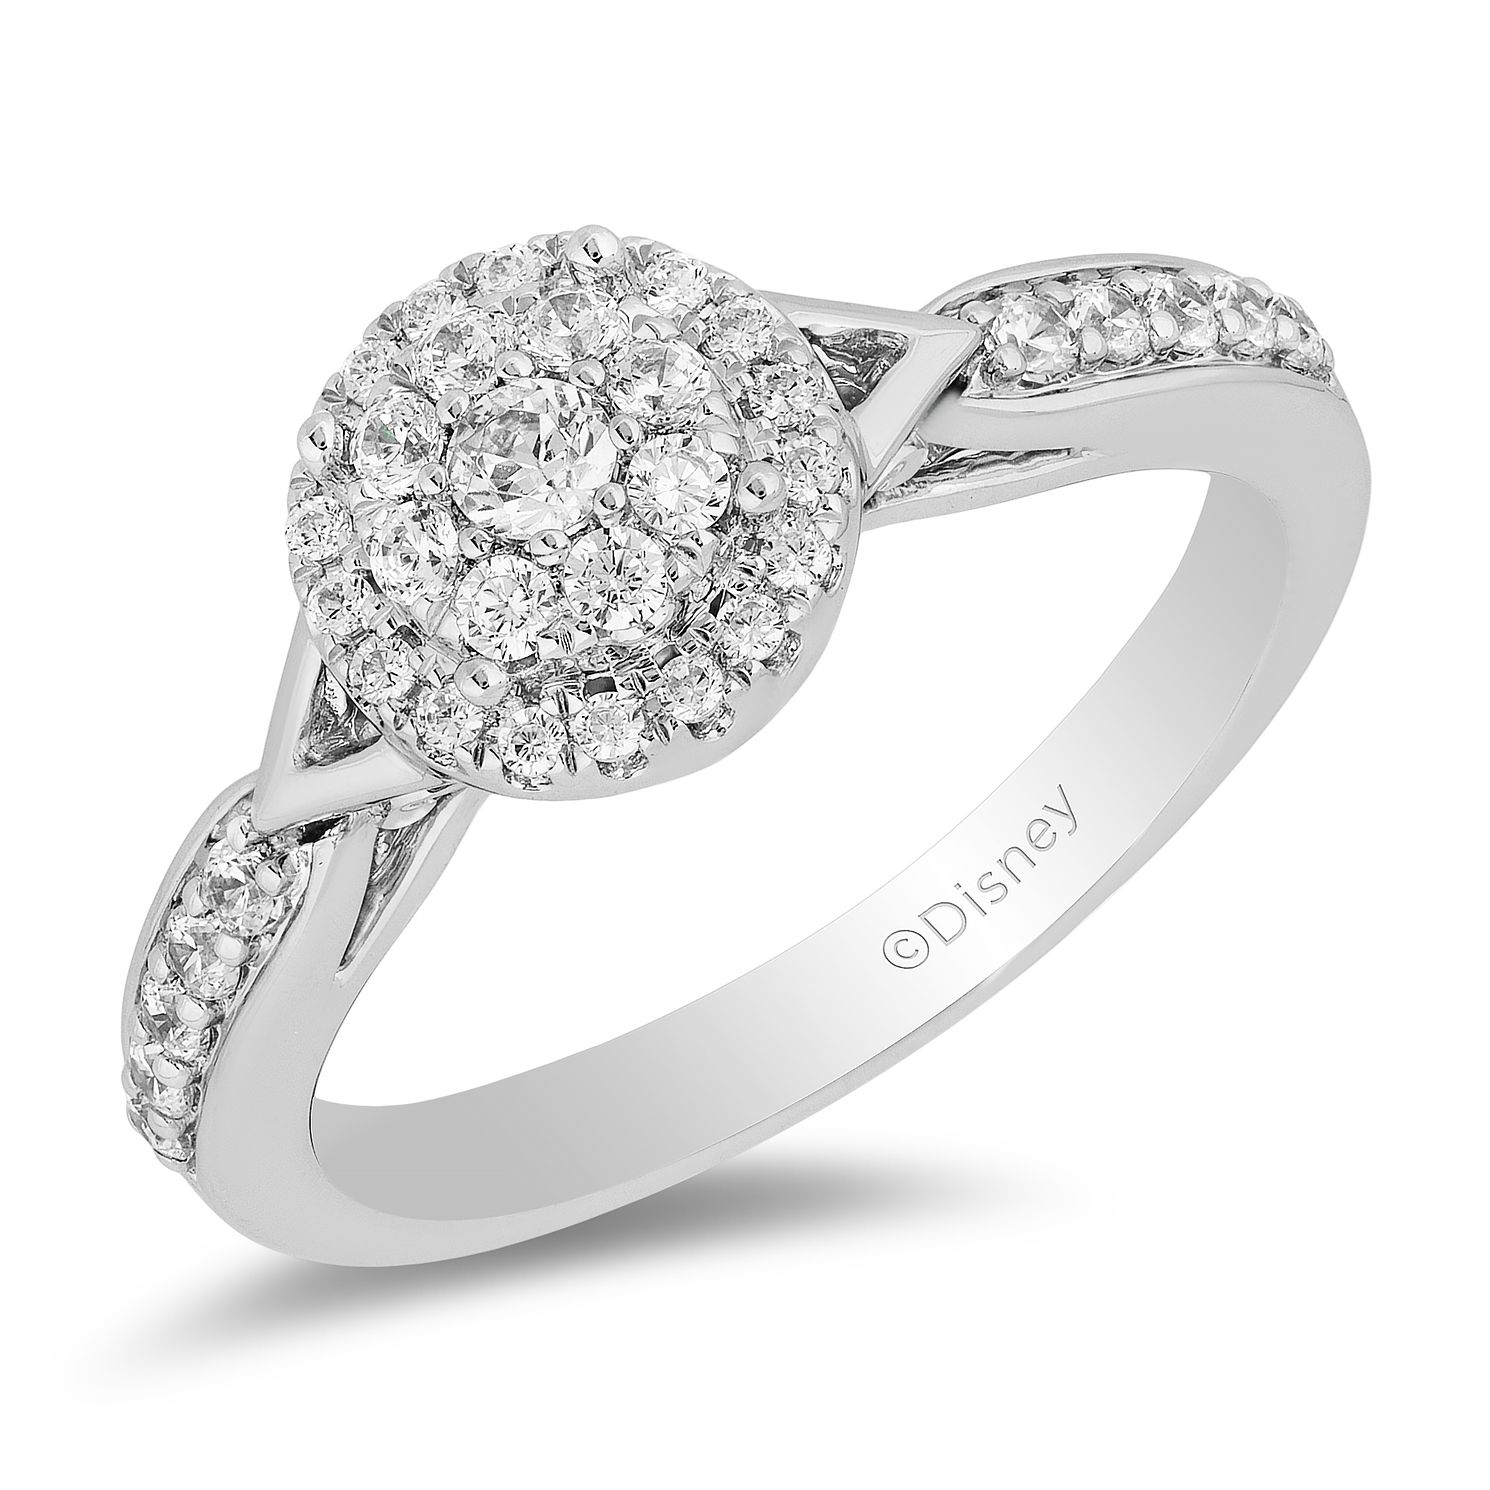 Enchanted Disney Fine Jewelry 0.50ct Diamond Tiana Ring - Product number 5105412